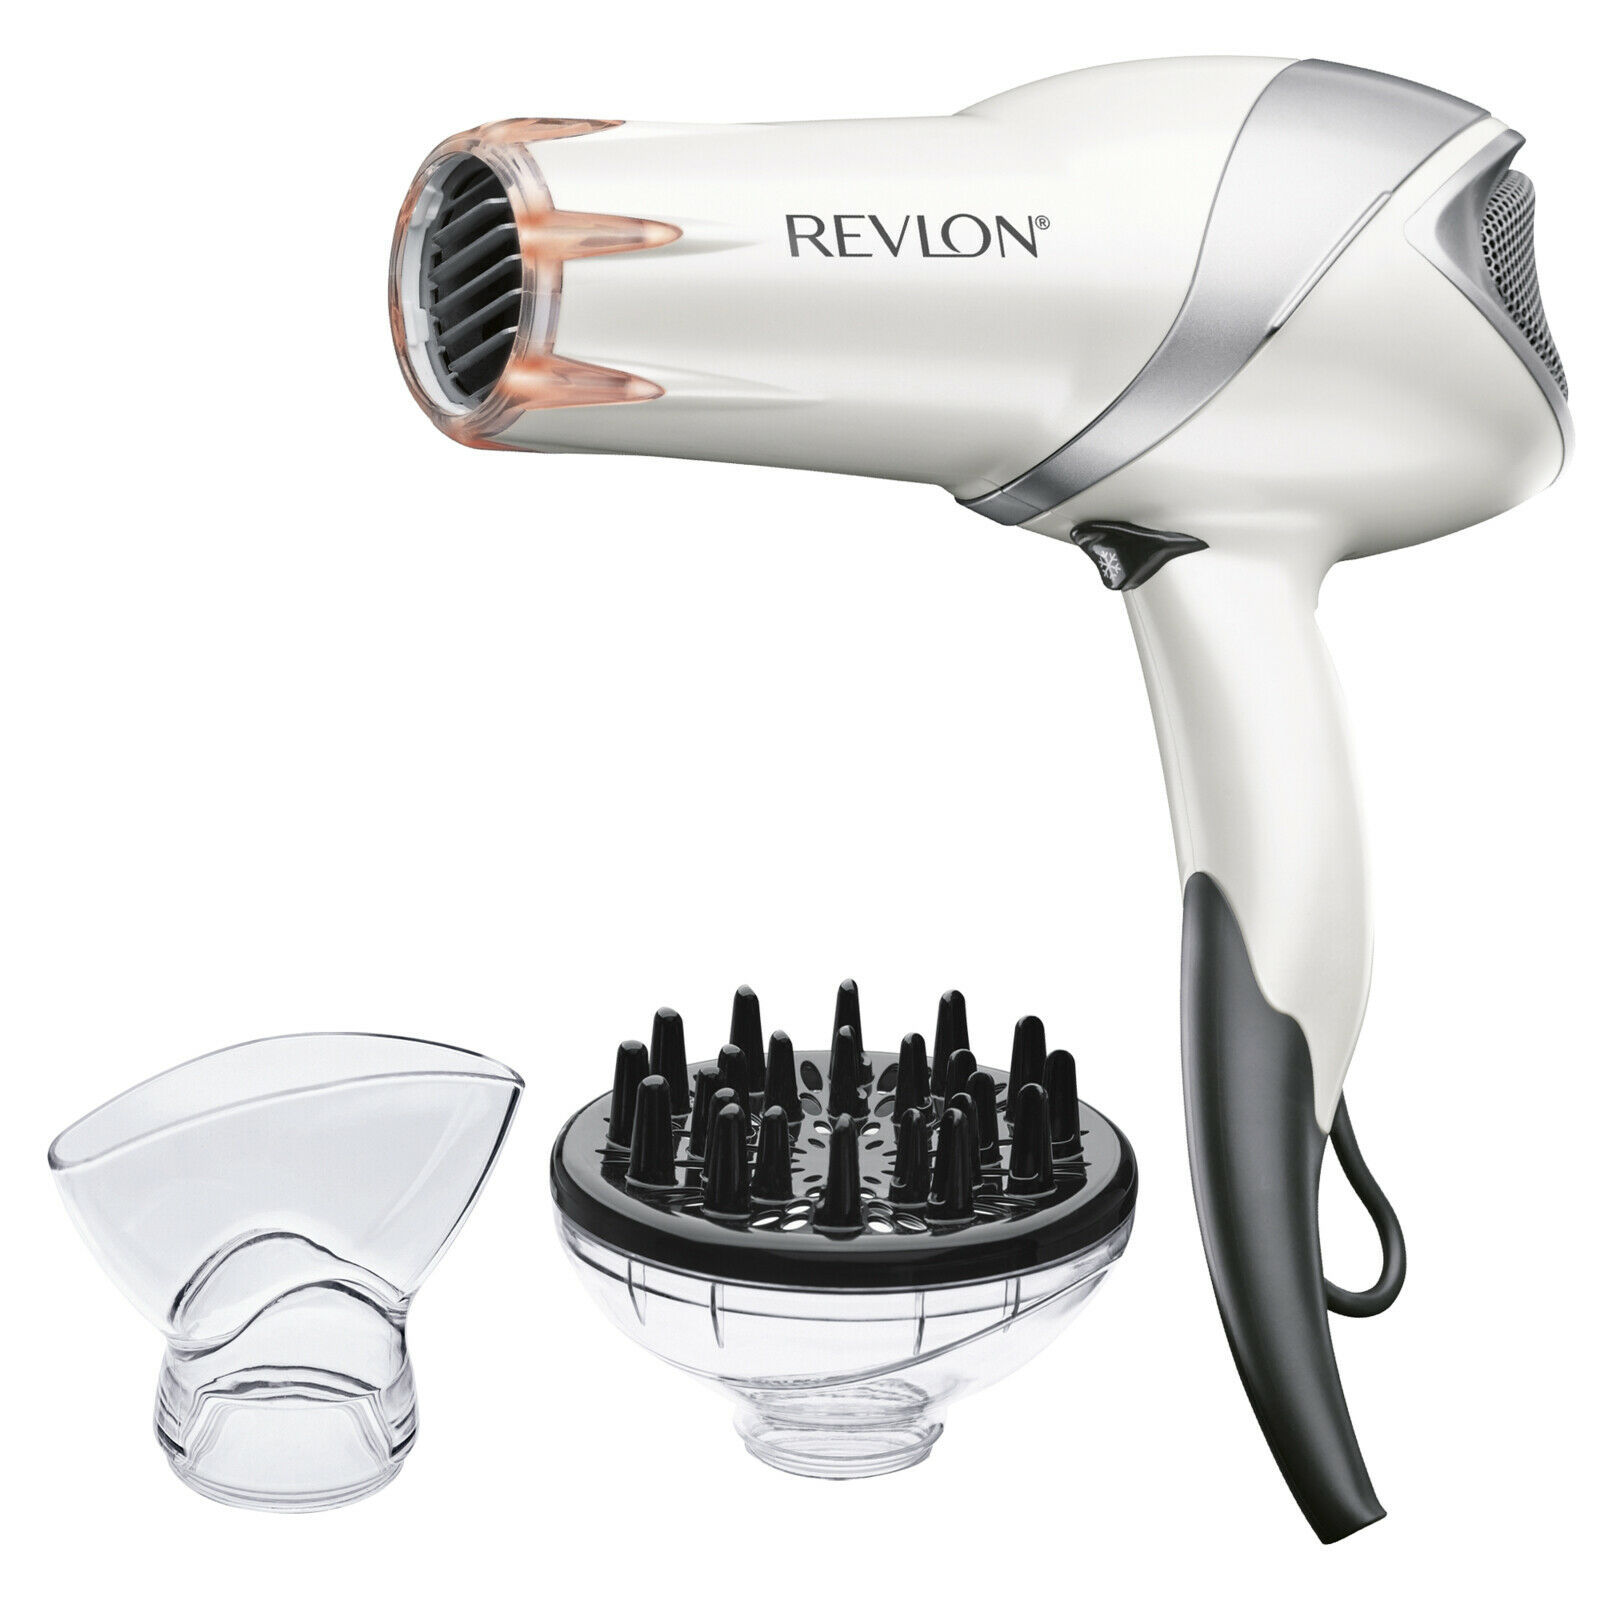 Infrared Tourmaline Ionic Hair Dryers, White with Concentrator and Diffuser - $40.17